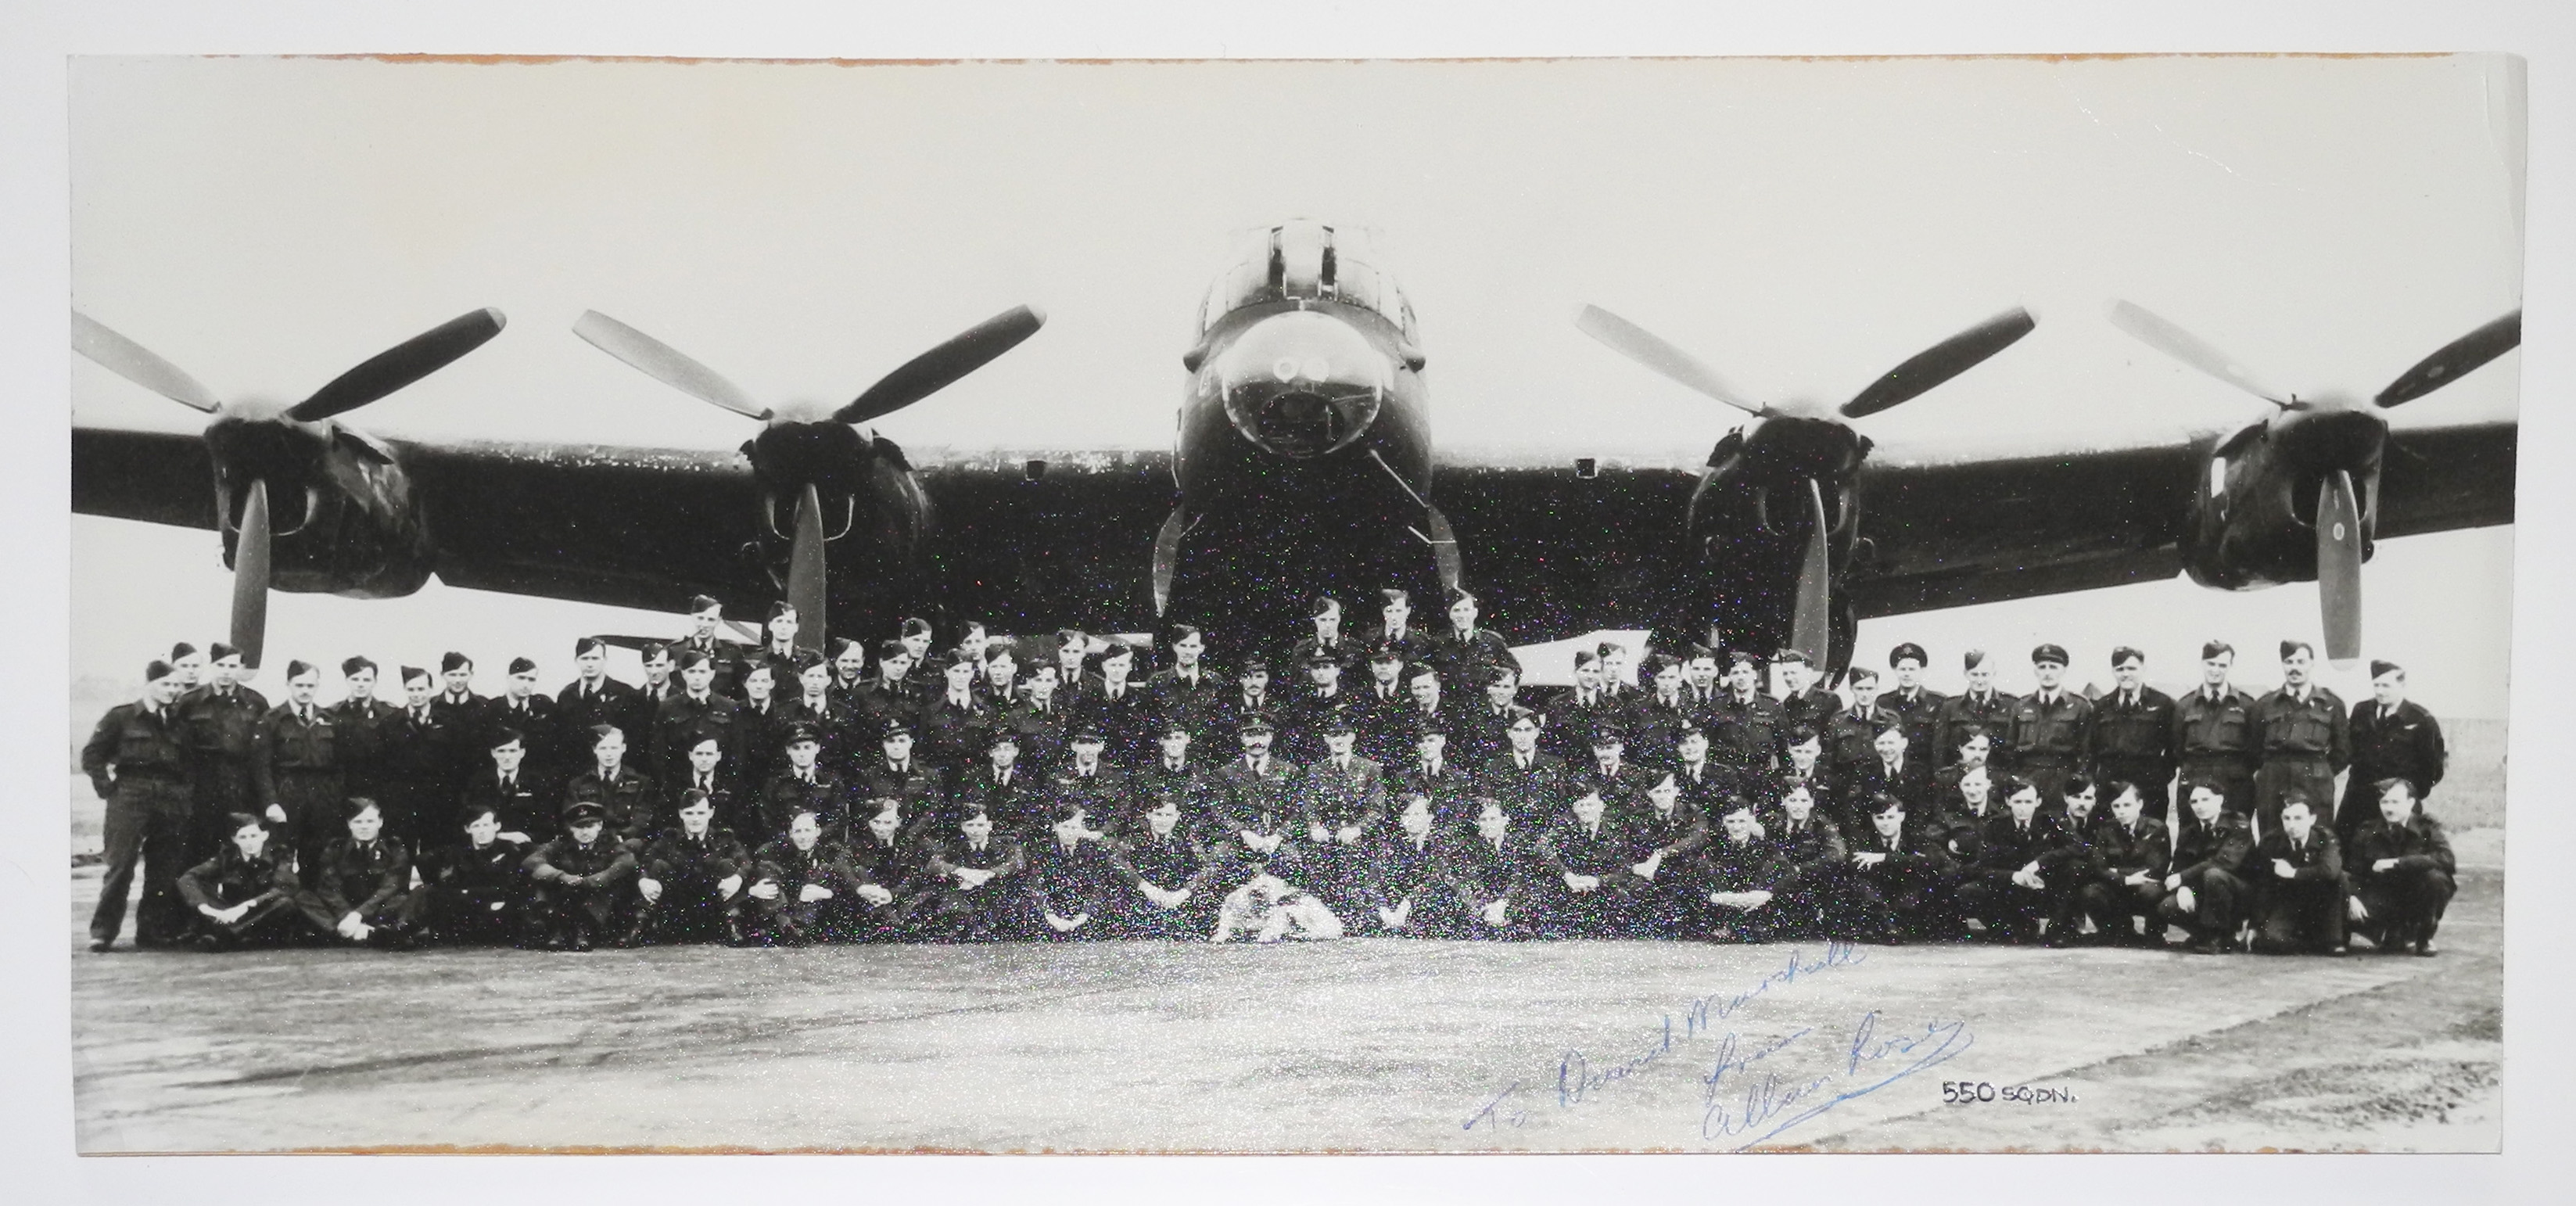 Signed photo 550 SQ. RAF